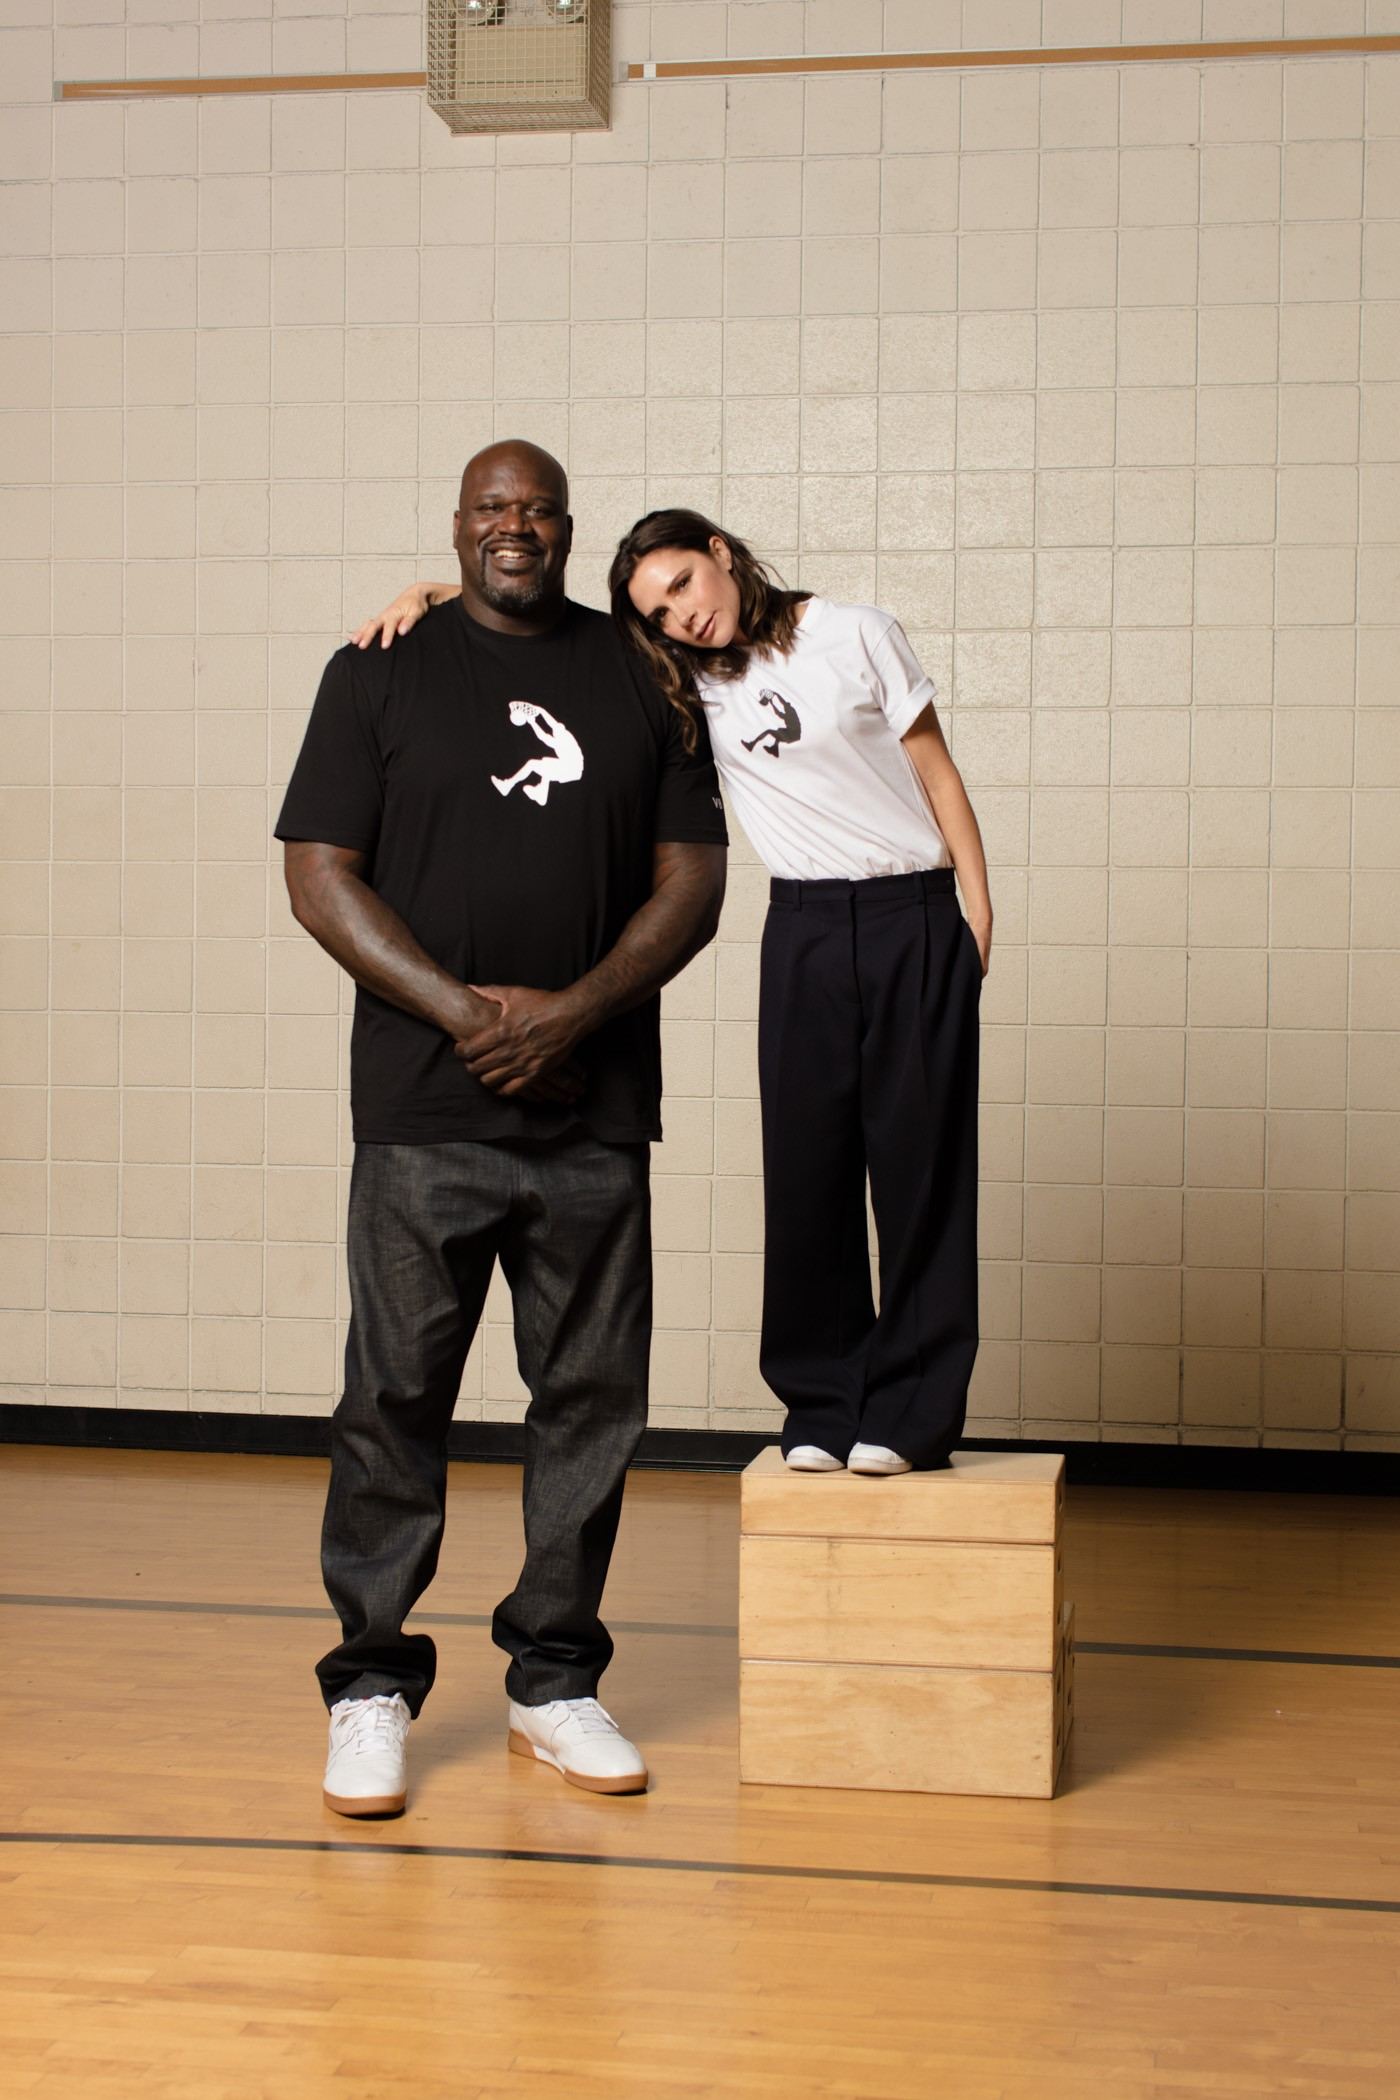 Shaquille O'Neal and Victoria Beckham at the Reebok event in Los Angeles